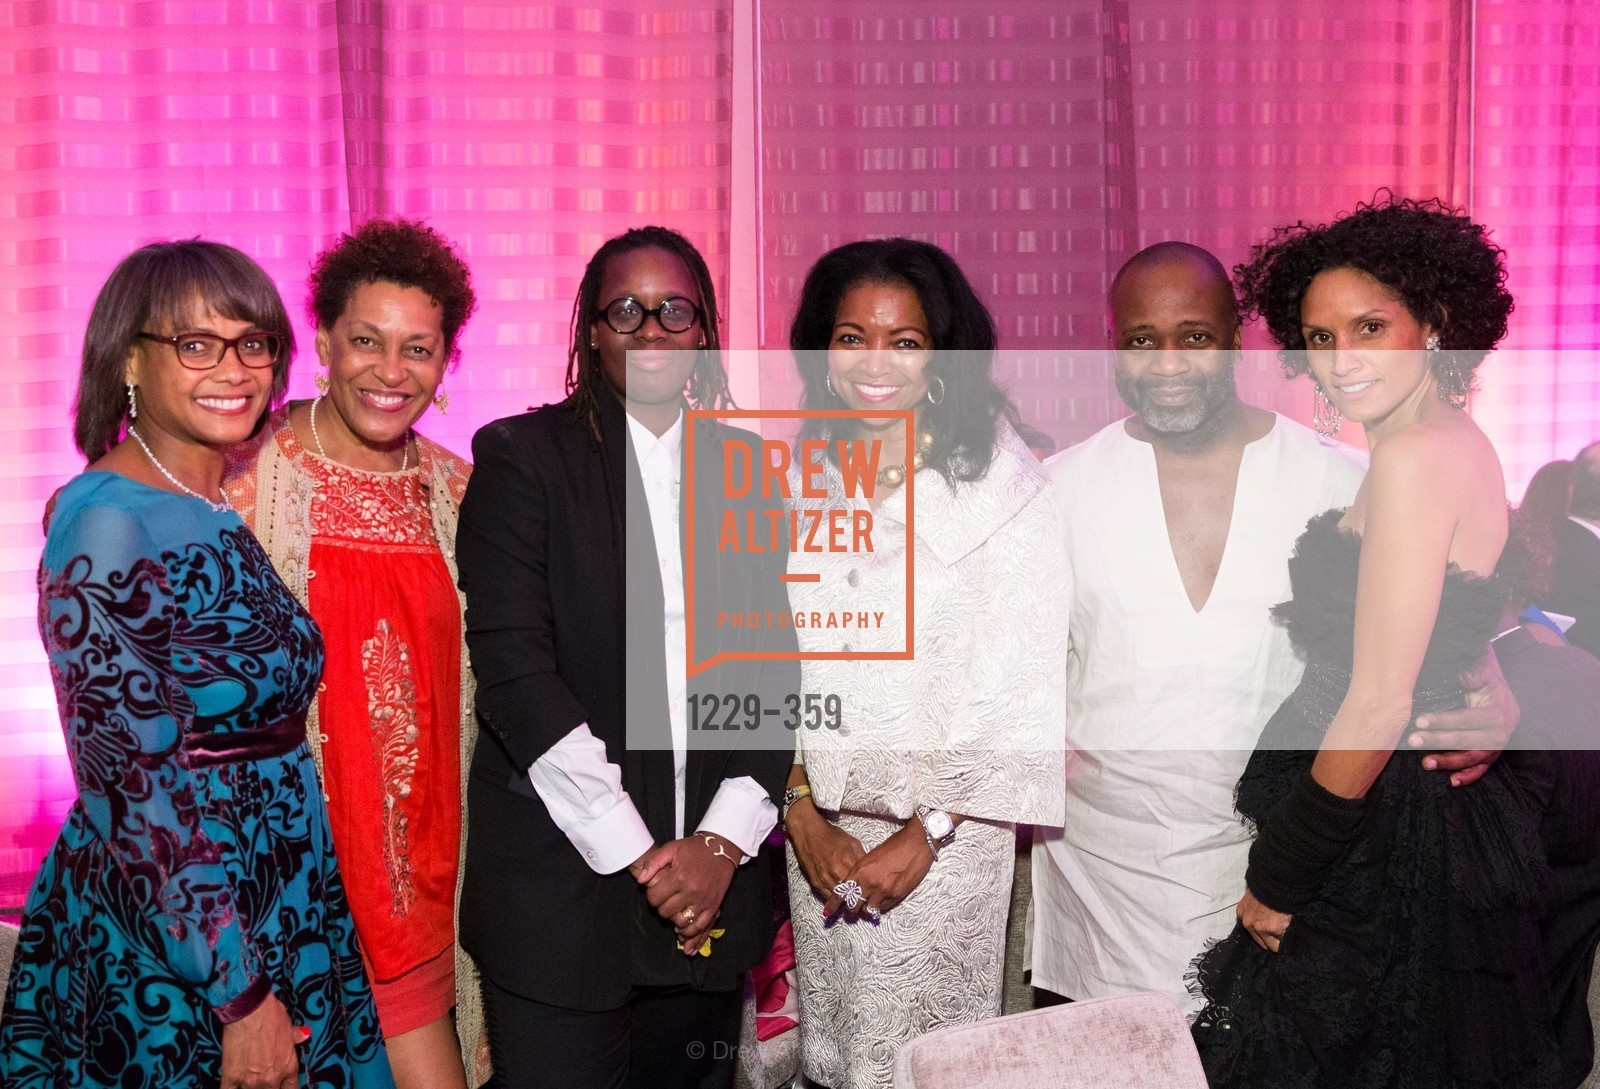 Karen Jenkins Johnson, Carrie Weems, Mickalene Thomas, Denise Bradley Tyson, Theaster Gates, Raquel Chevremont, 2015 MoAD Gala: Finding the I in Diaspora, MoAD Museum & The St. Regis, October 10th, 2015,Drew Altizer, Drew Altizer Photography, full-service agency, private events, San Francisco photographer, photographer california